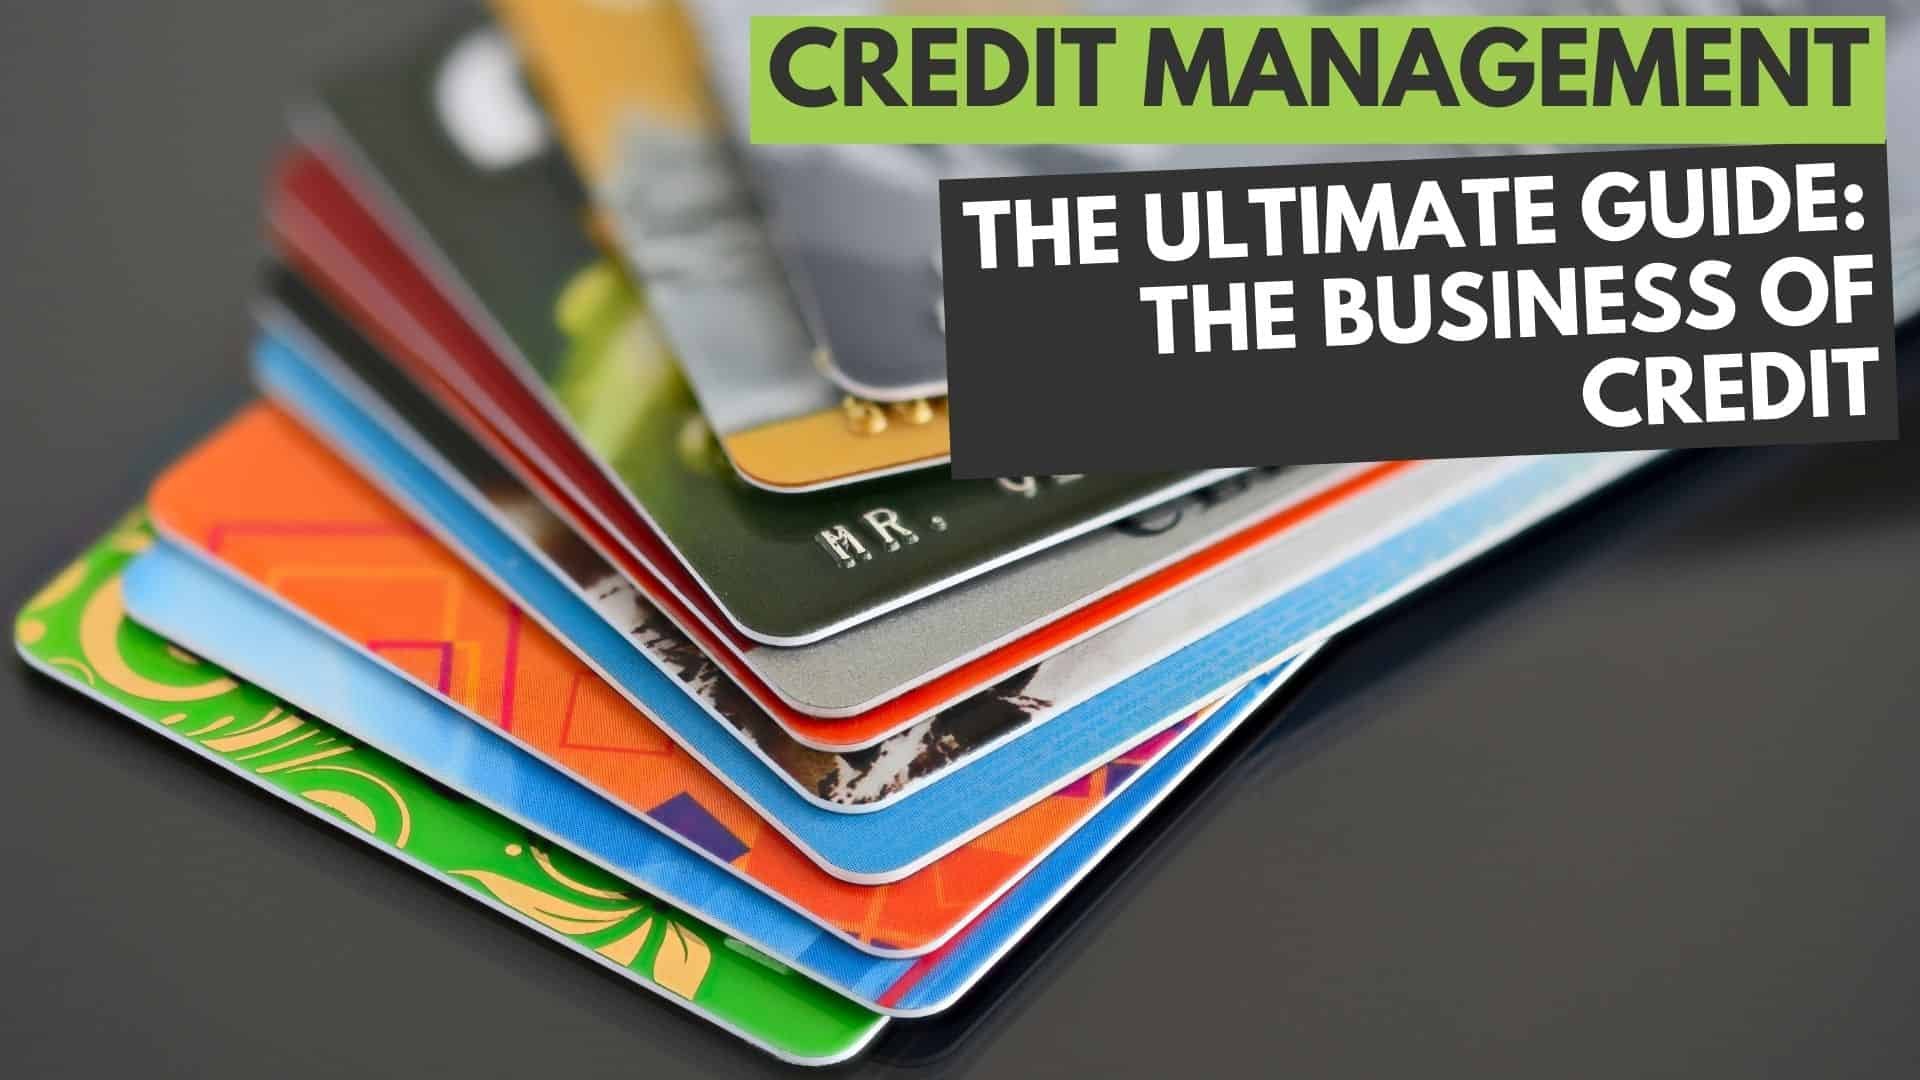 Credit Management: The Ultimate Guide